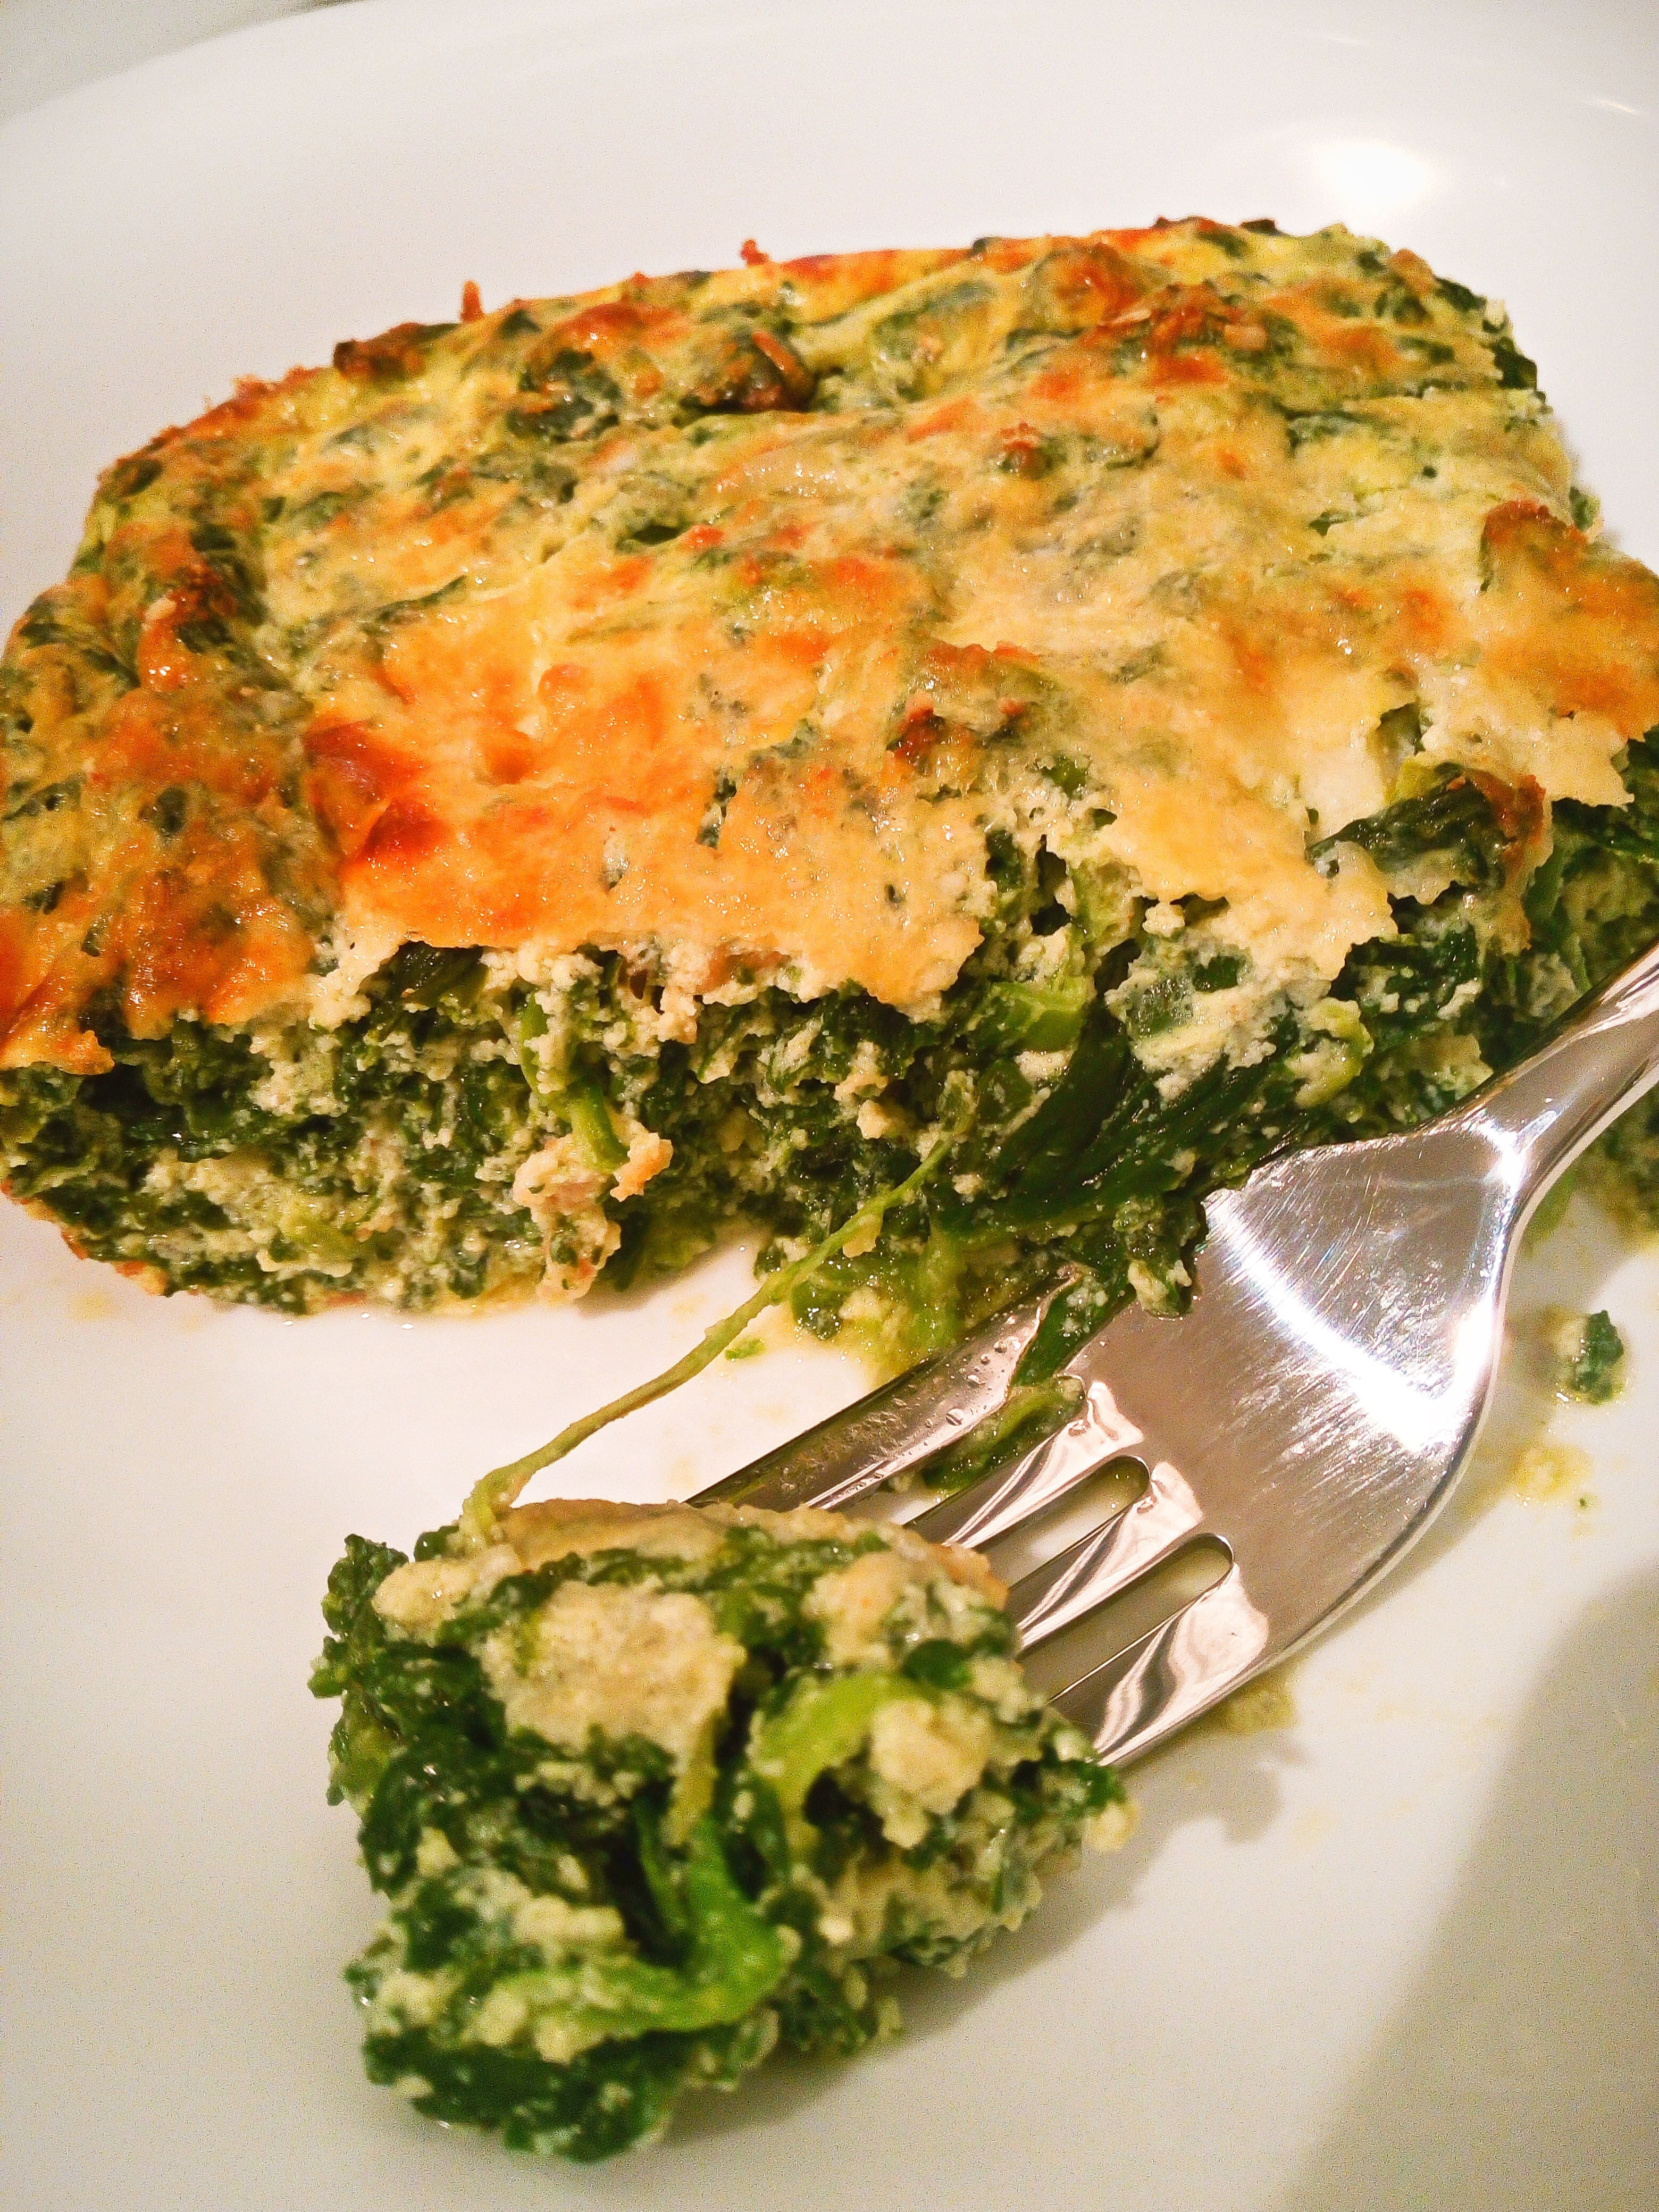 Baked Spinach and Ricotta